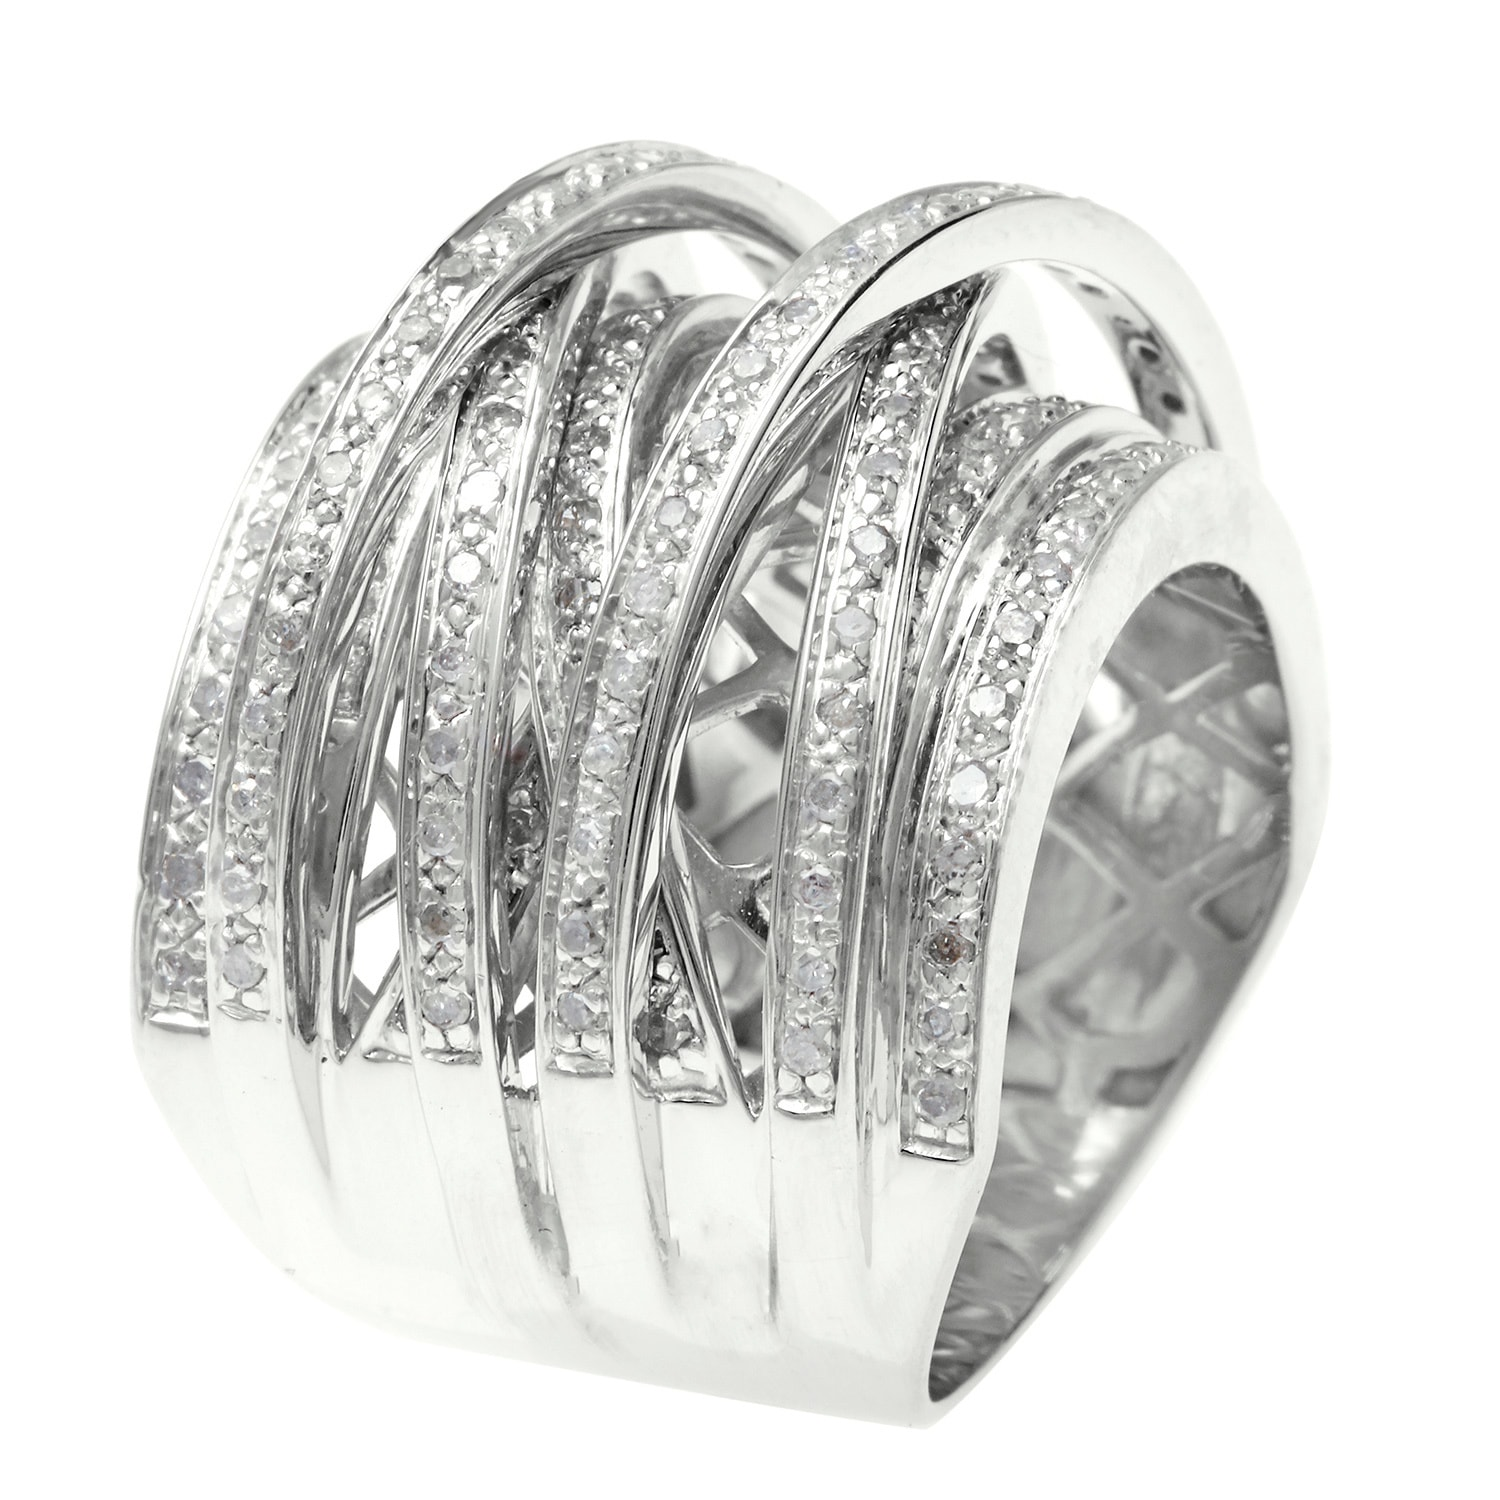 silver ring anniversary miadora jewelry shipping today watches row multi overstock sterling bands tdw diamond free product